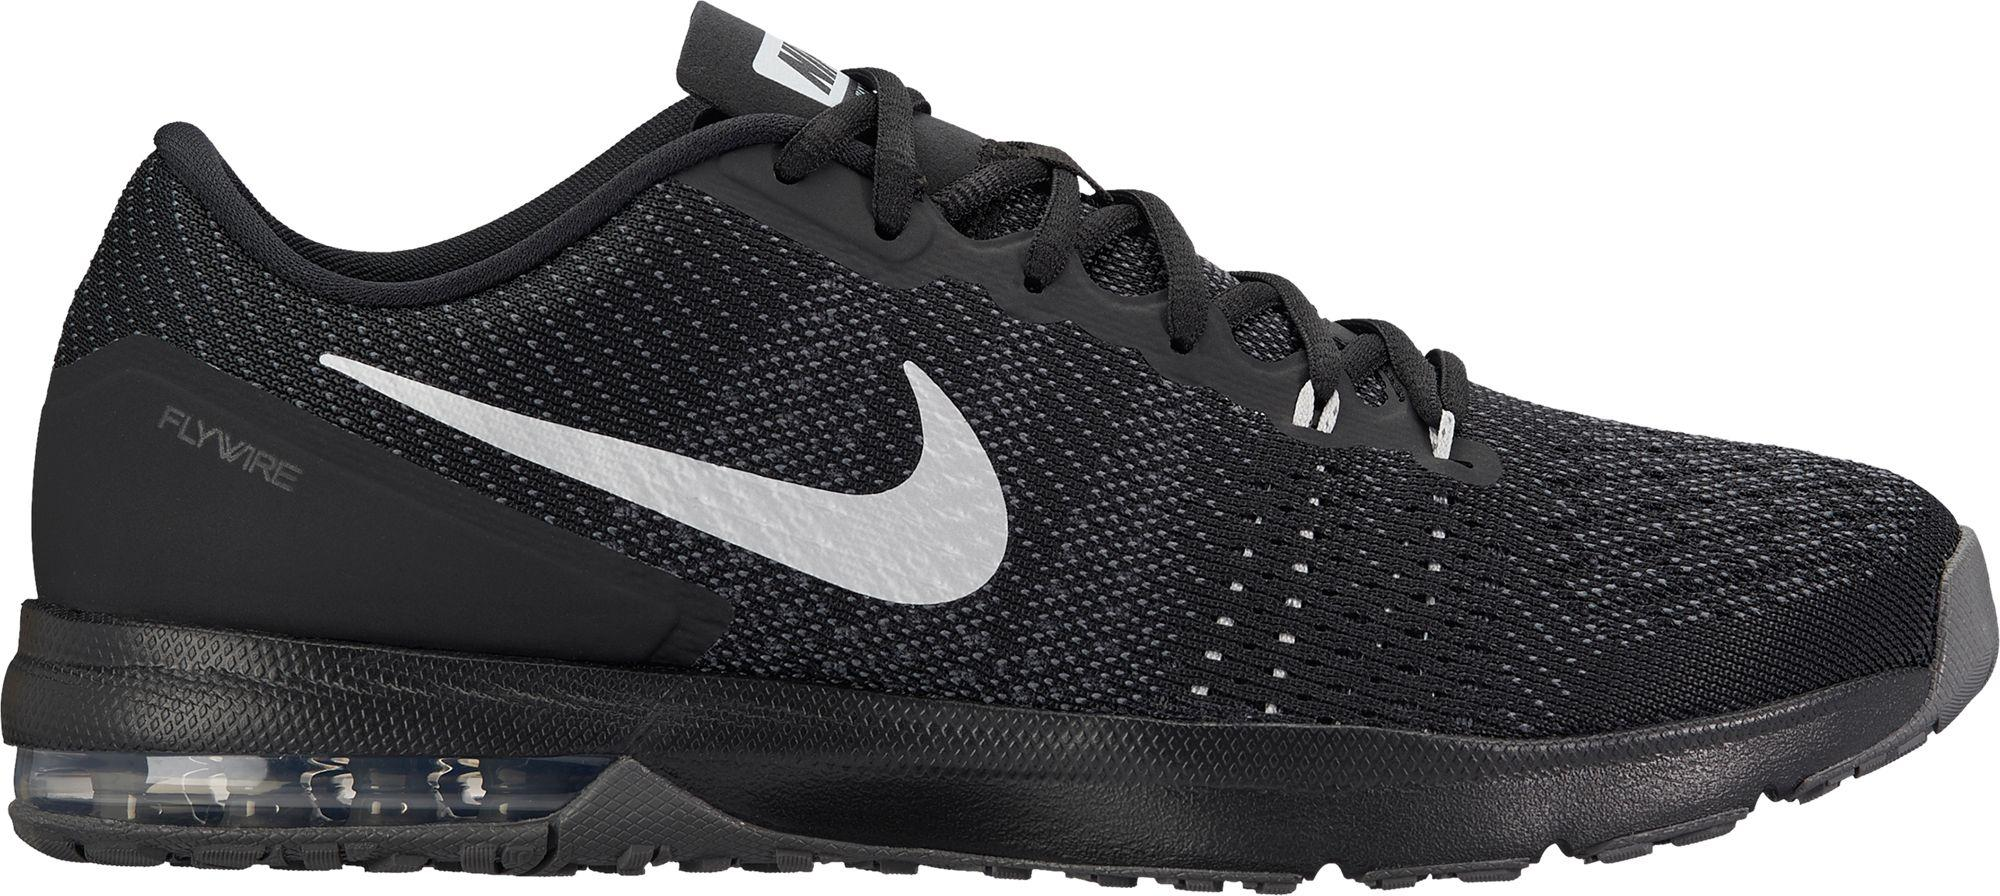 Cost effective Nike Air Max Typha Training Shoes Men